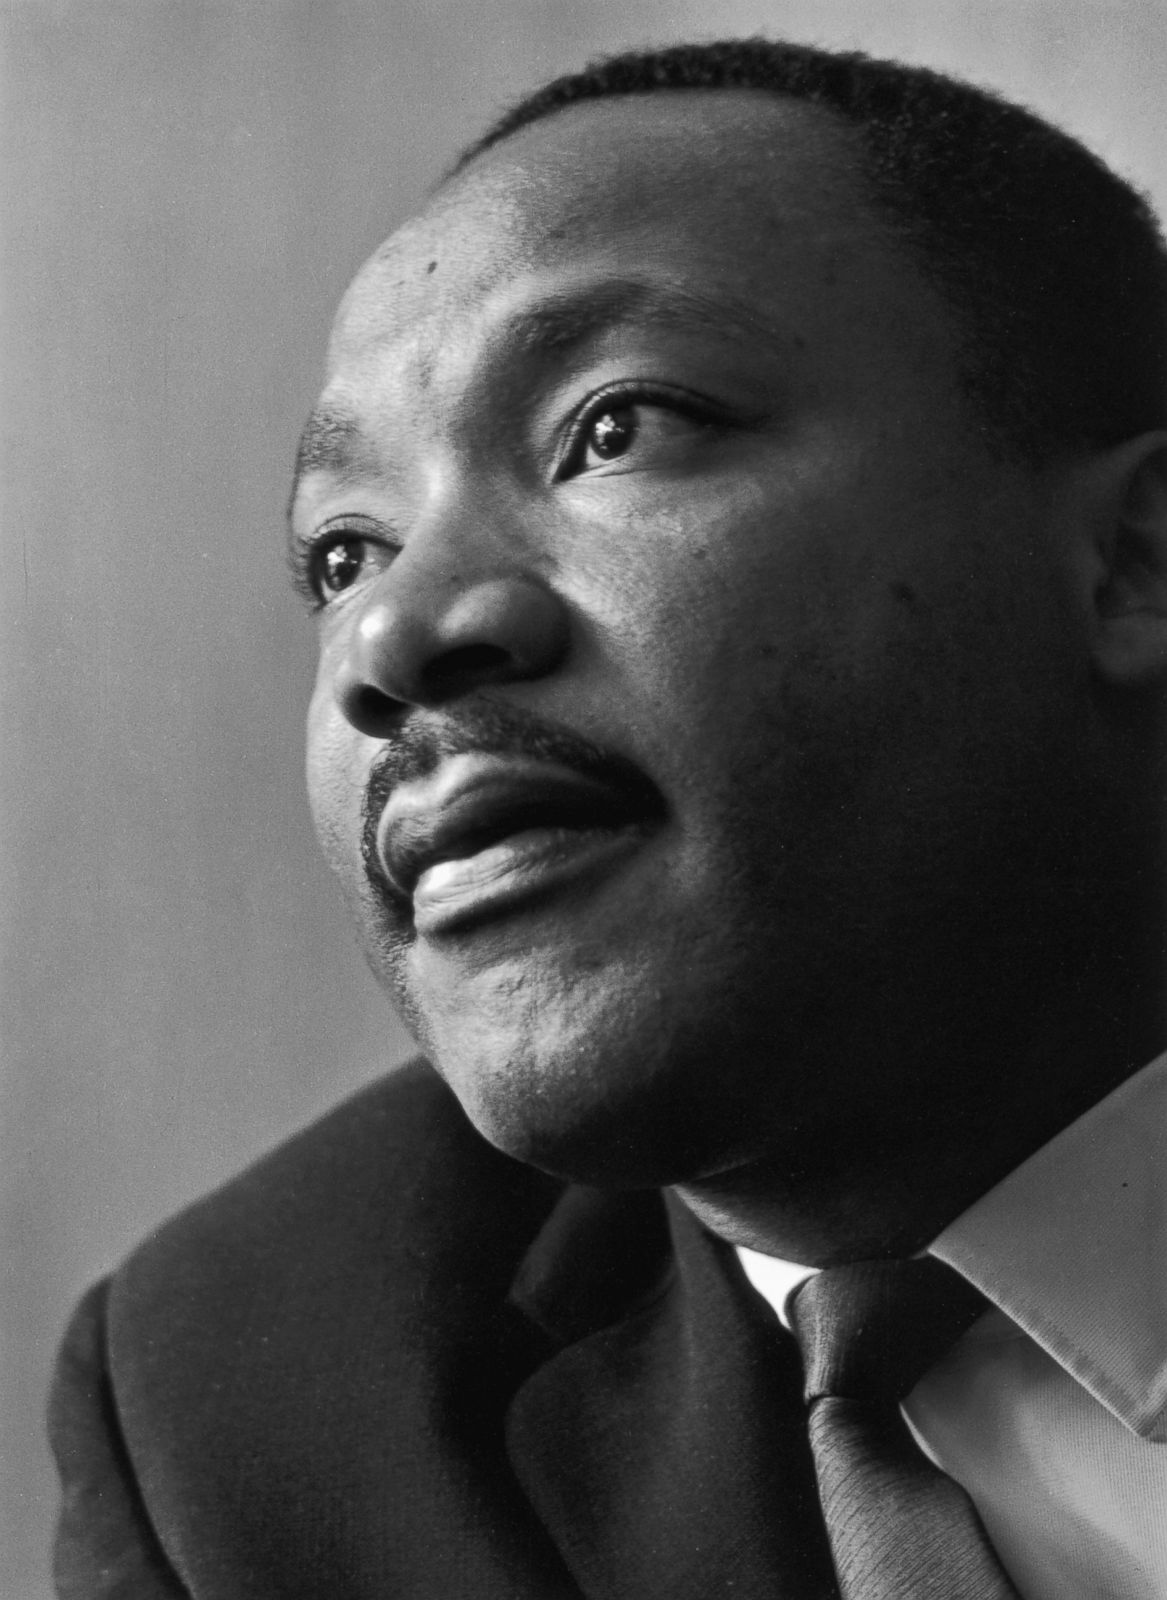 martin luther king speech i have a dreammartin luther king jr, martin luther king i have a dream, martin luther king day, martin luther king day 2017, martin luther king quotes, martin luther king short biography, martin luther king biography, martin luther king hayeren, martin luther king facts, martin luther king presentation, martin luther king movie, martin luther king informatie, martin luther king speech analysis, martin luther king interesting facts, martin luther king film, martin luther king essay, martin luther king speech i have a dream, martin luther king letter from birmingham jail, martin luther king jr. memorial, martin luther king topic